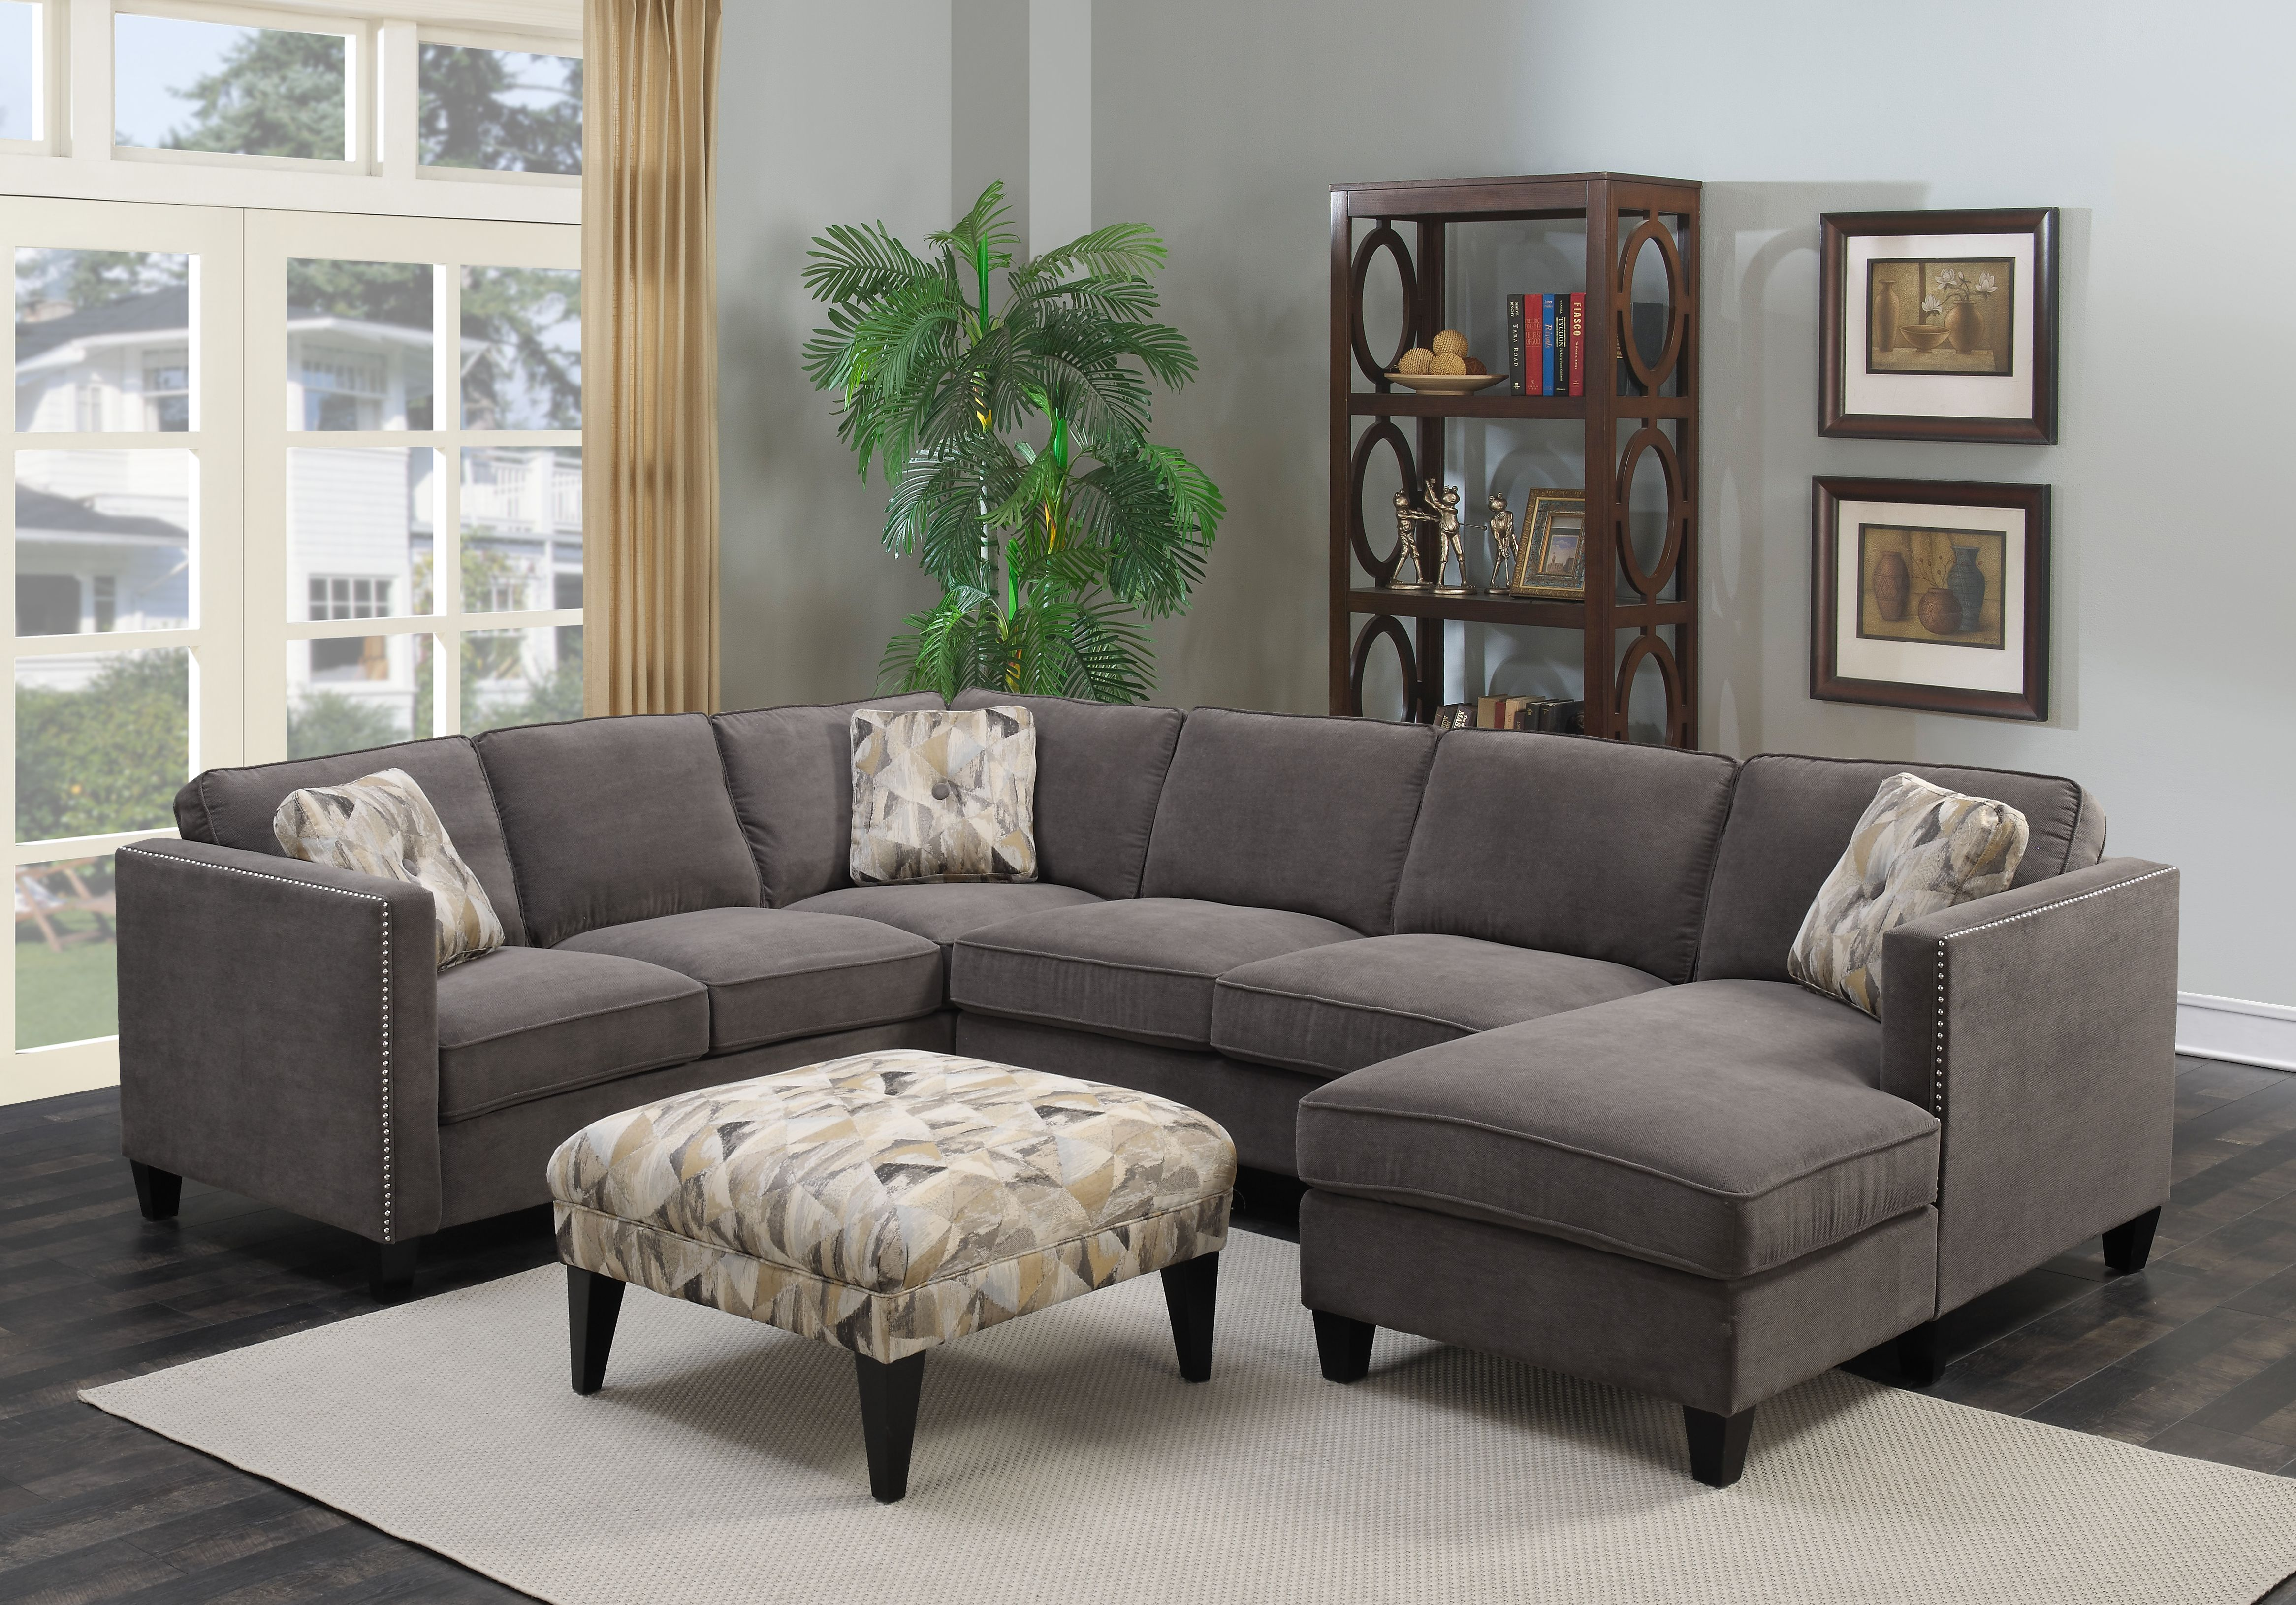 Focus U4286 More Colors Available Emerald Home Furnishings Living Room Sectional Furniture Home Furnishings